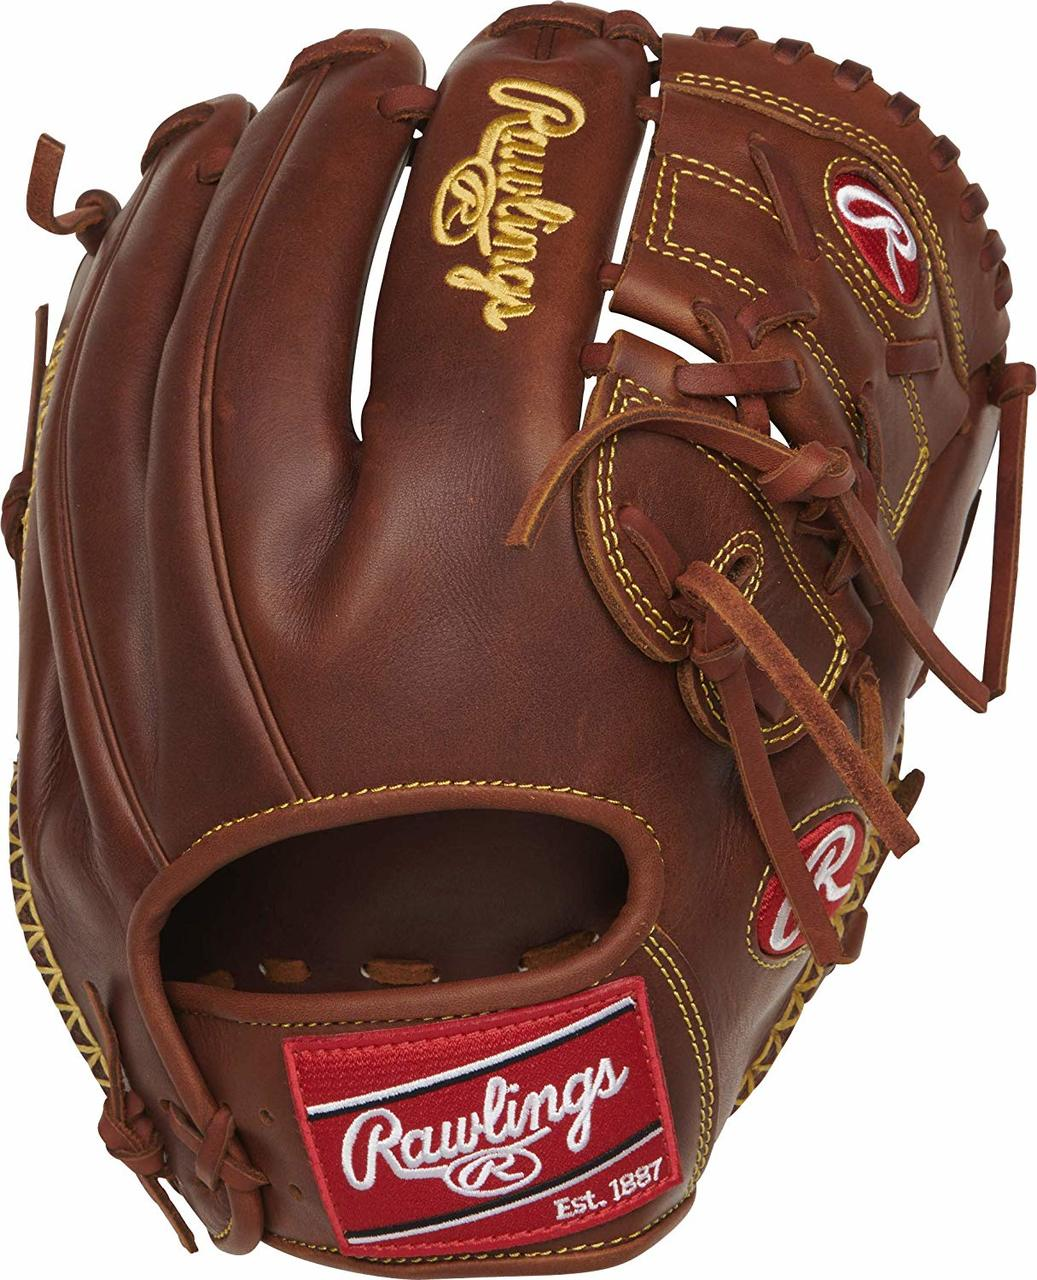 rawlings-heart-of-the-hide-205-9tifs-baseball-glove-11-75-right-hand-throw PRO205-9TIFS-RightHandThrow Rawlings 083321599033 Made from renowned Heart of the Hide leather this 11.75 inch